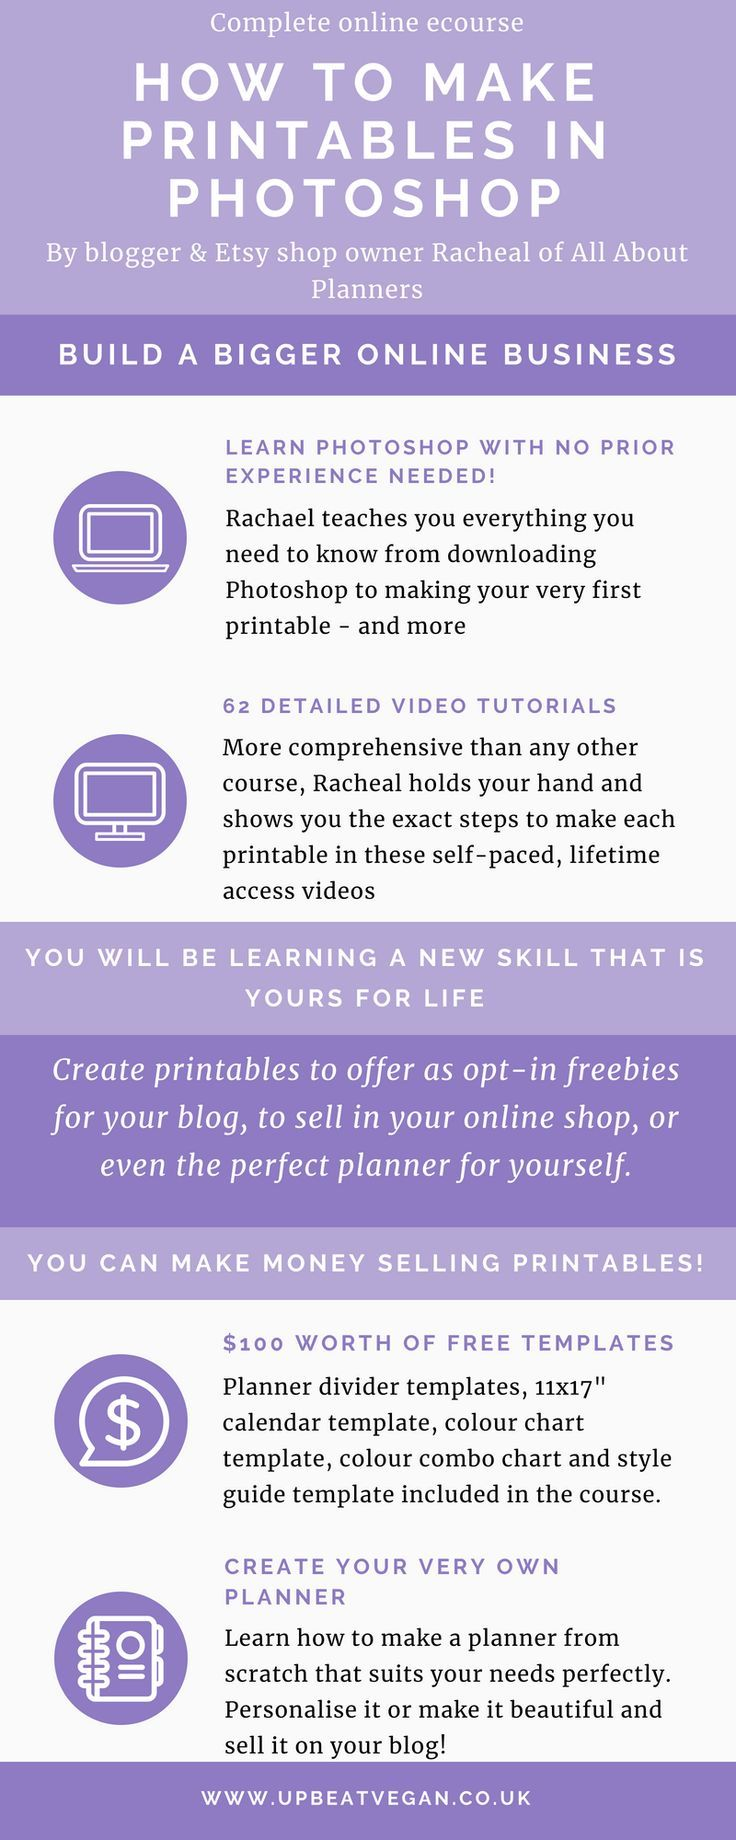 How To Make Printables In Photo Is A Complete Online Course From Rachael Of All About Planners She Makes 6 Figures Ing Her Etsy